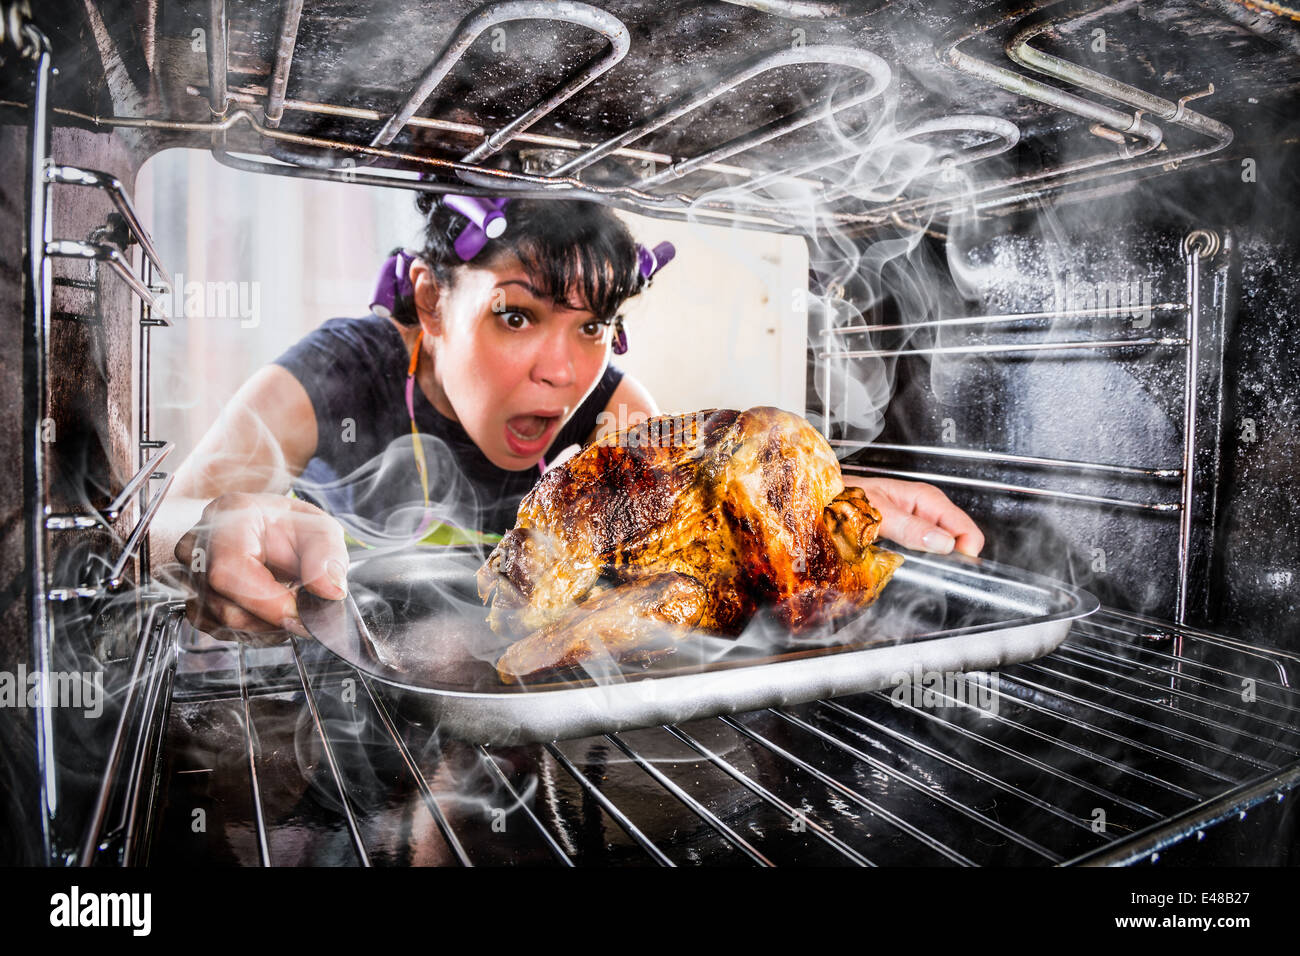 Housewife prepares roast chicken in the oven, view from the inside of the oven. Cooking in the oven. - Stock Image